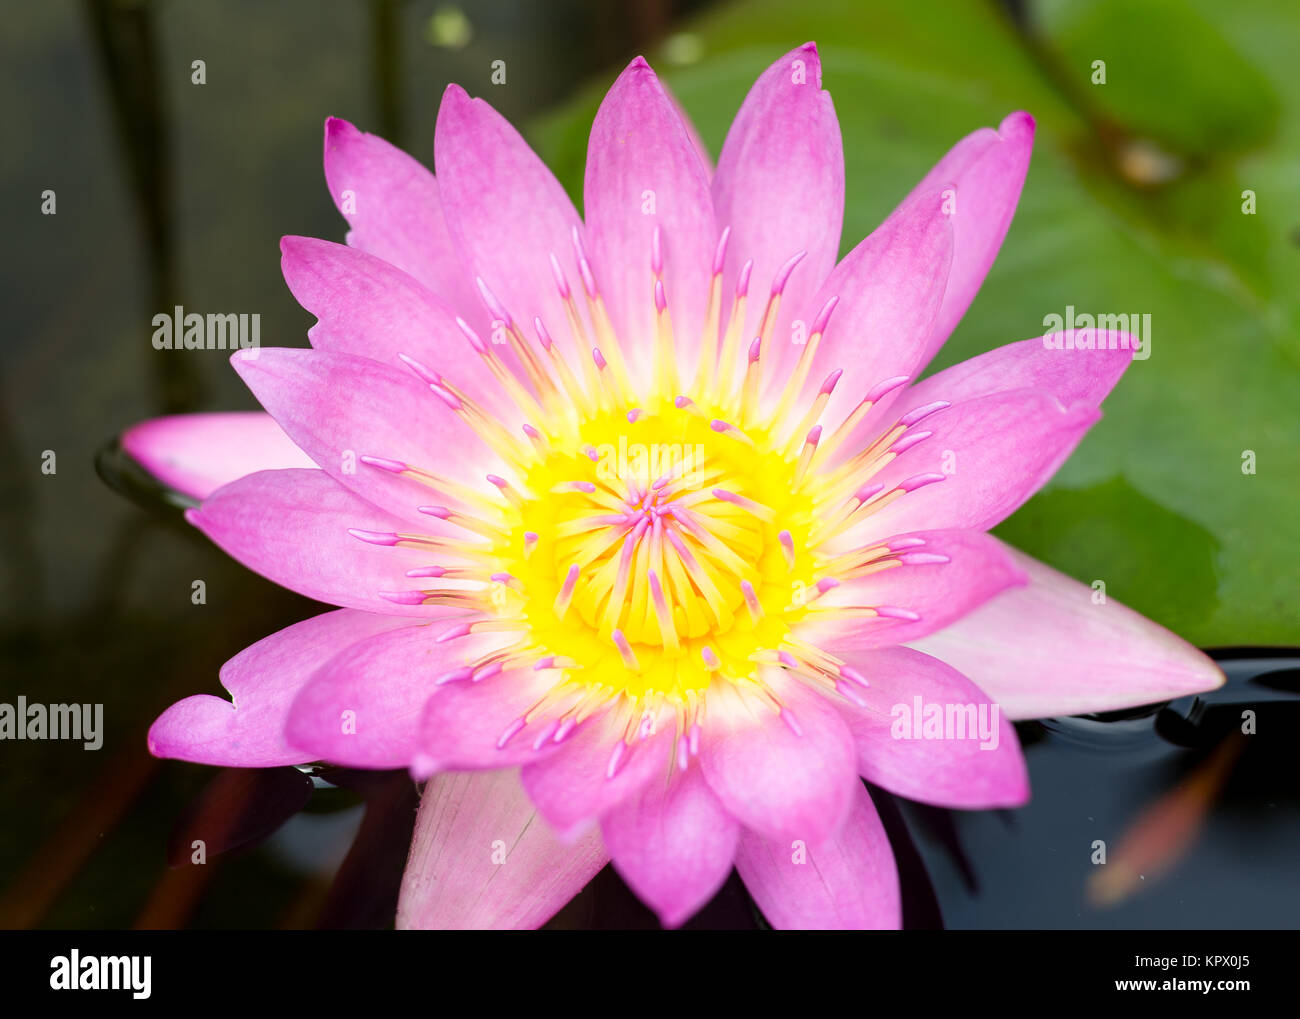 Lotus blossom with lily pad stock photo royalty free image lotus blossom with lily pad izmirmasajfo Images